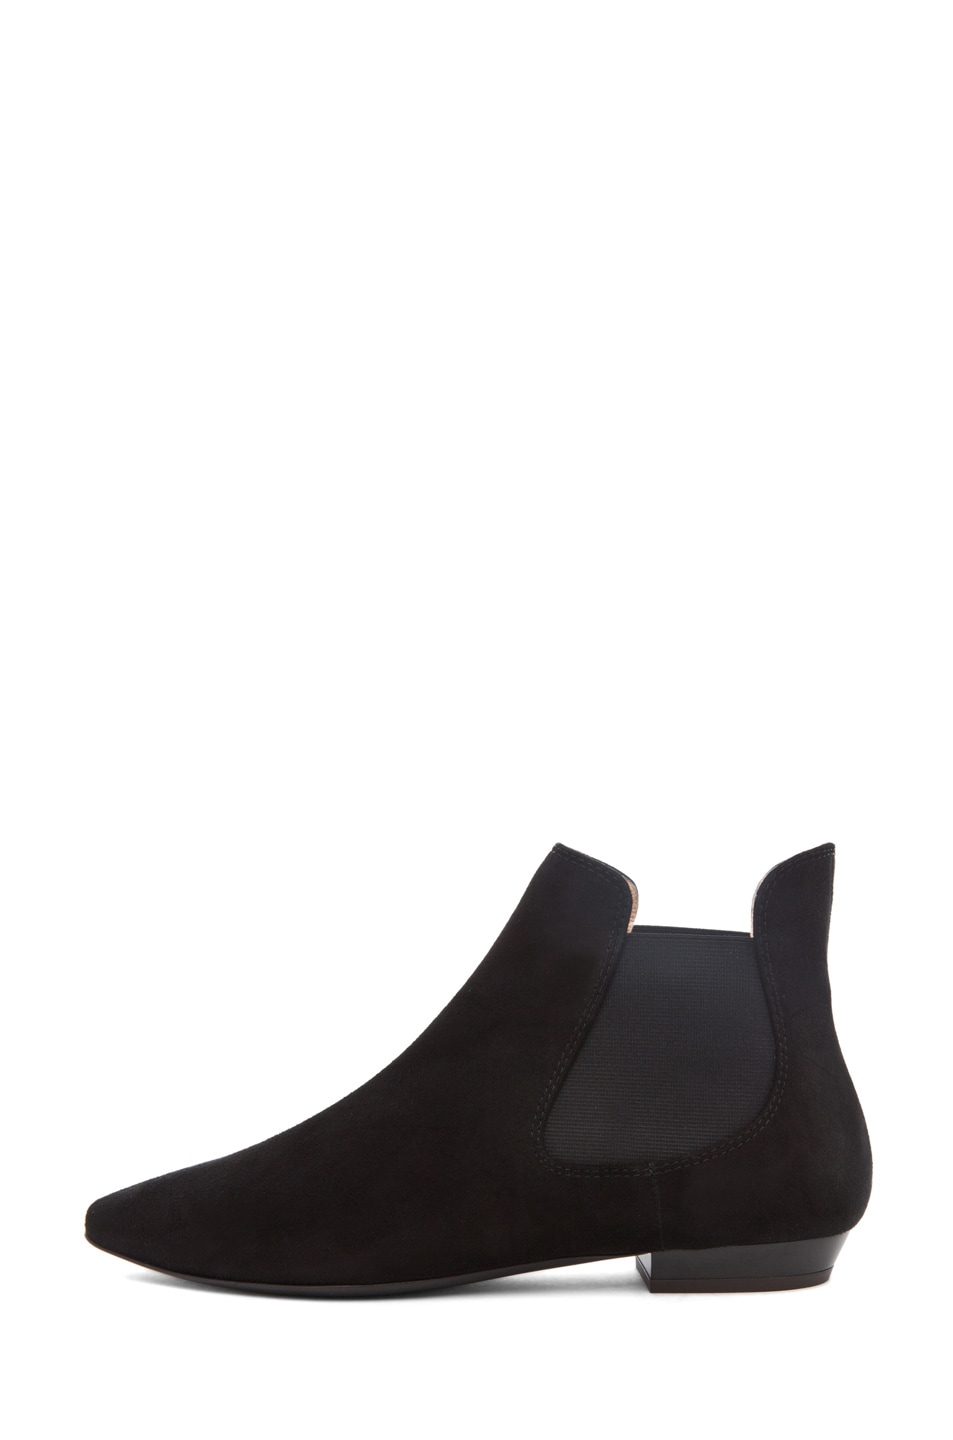 Image 1 of Giuseppe Zanotti Flat Bootie Suede in Black